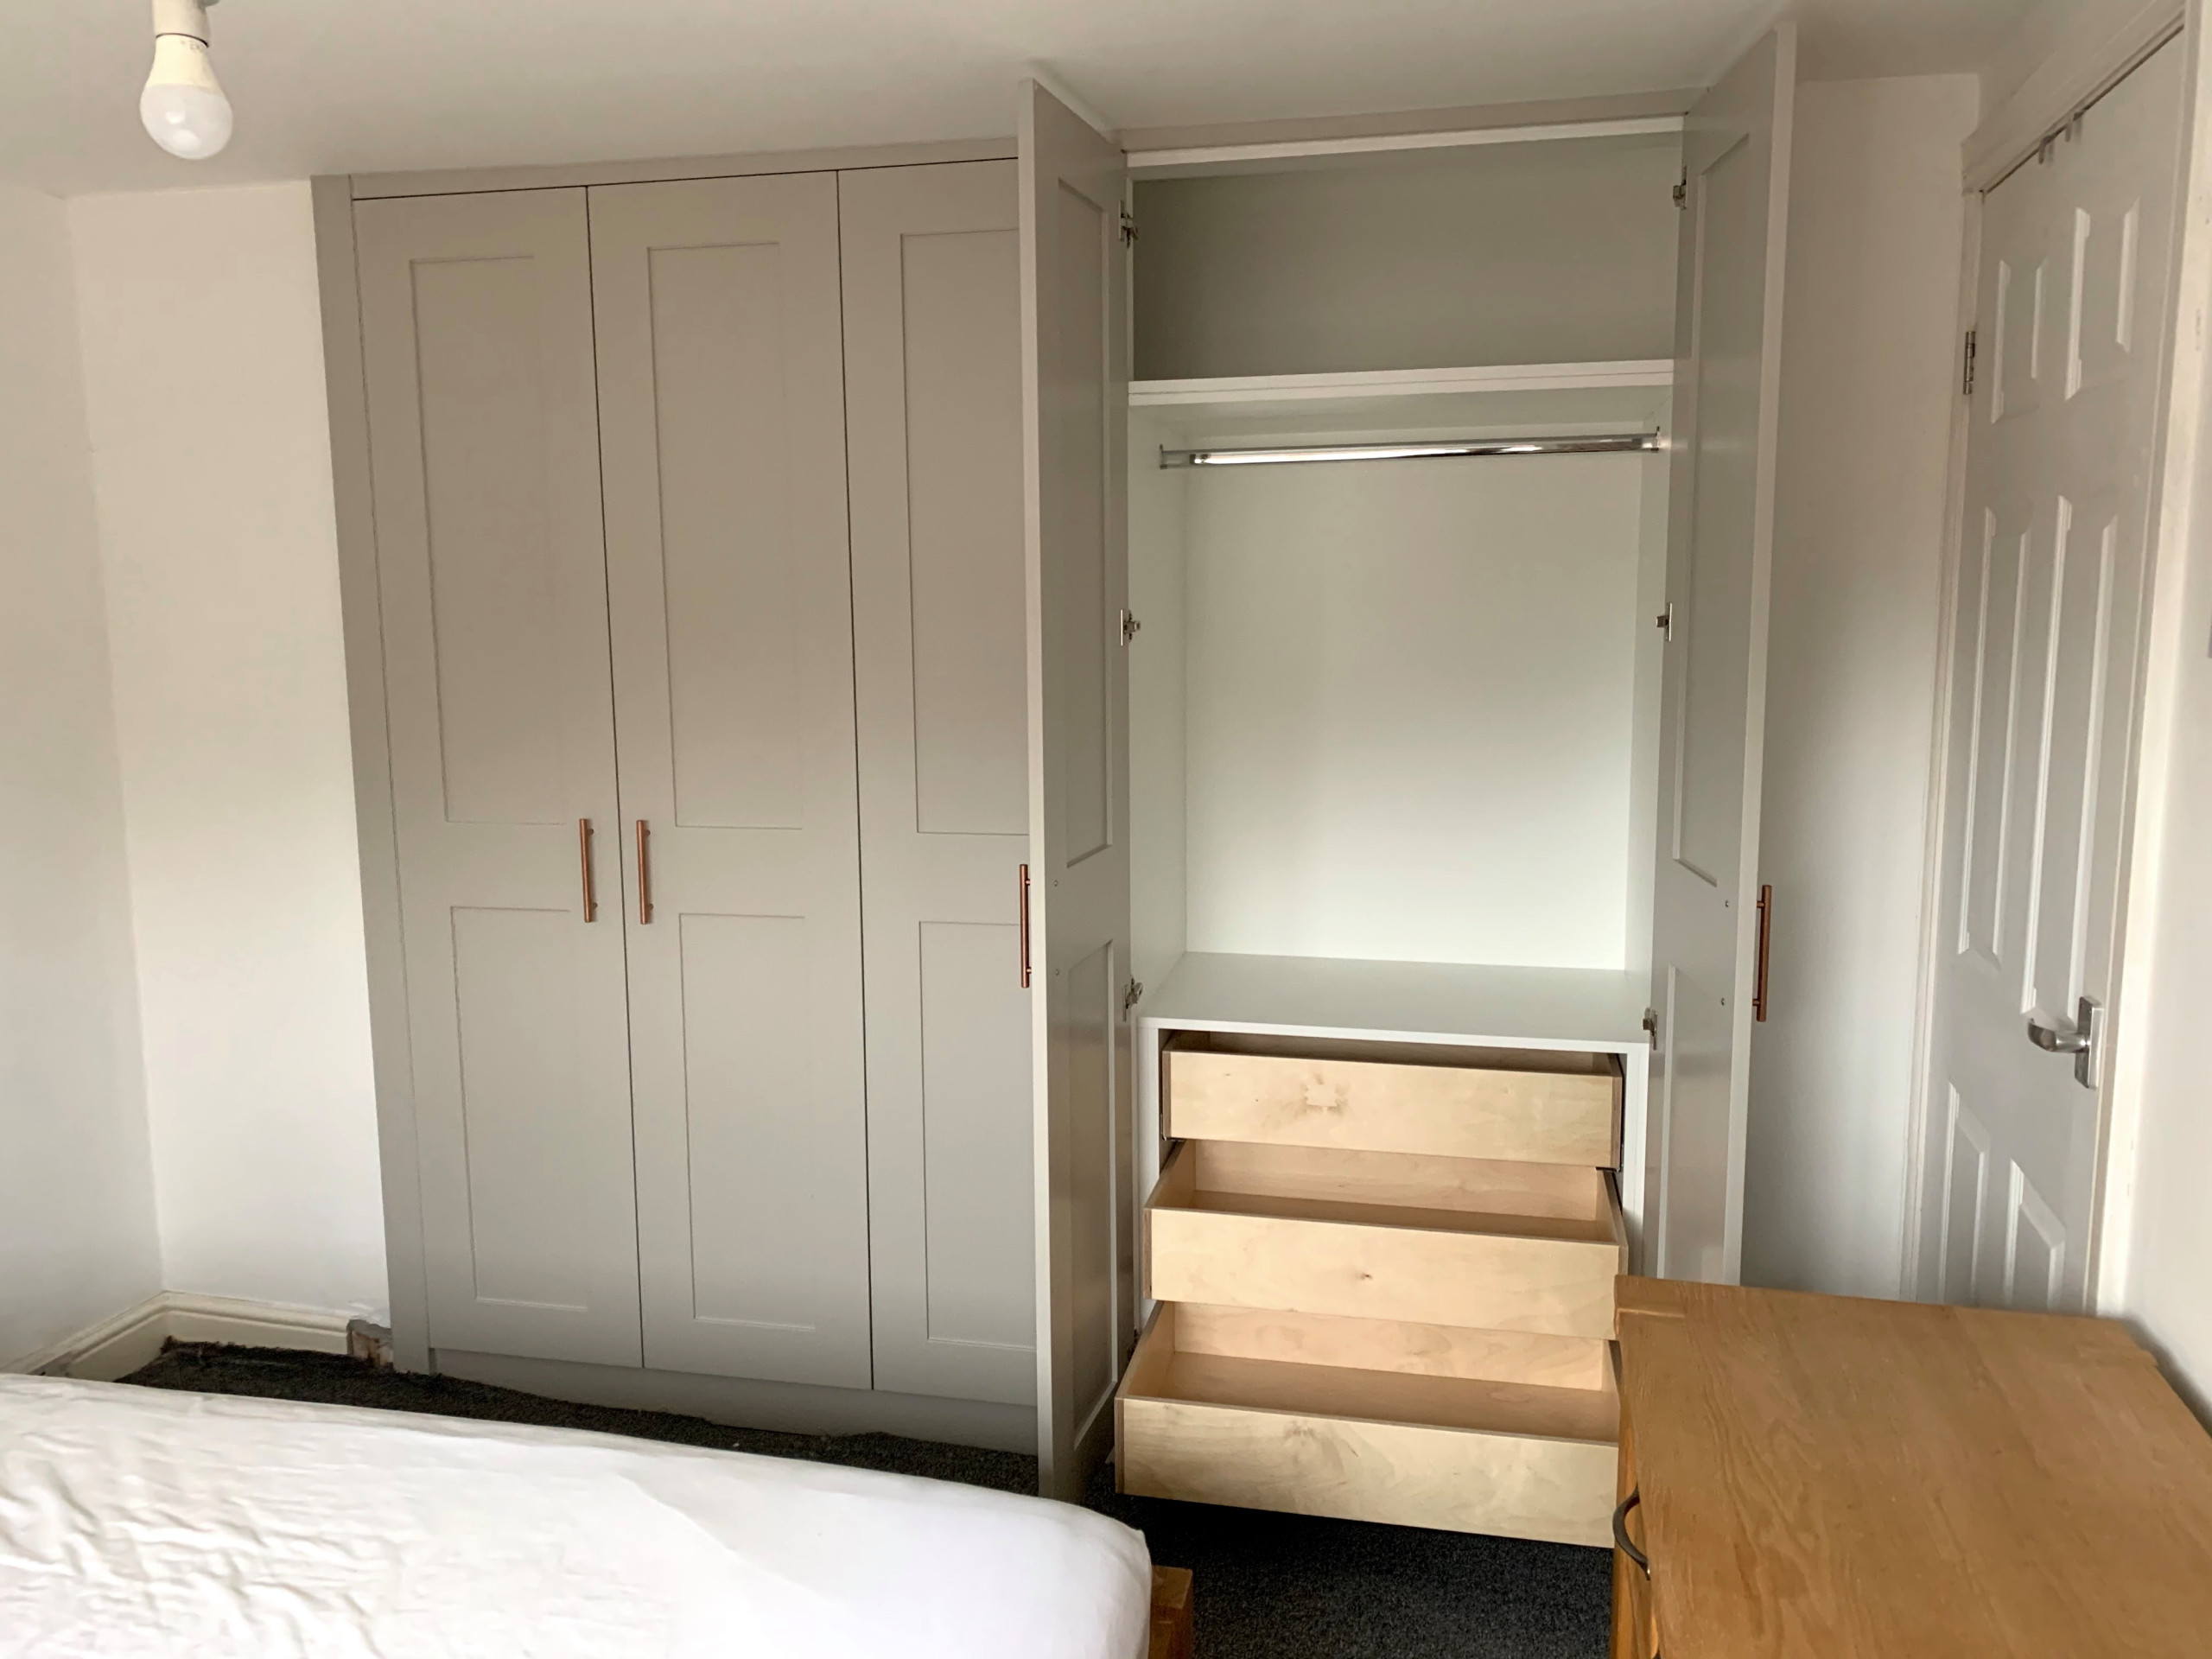 Wardrobes With Shaker Doors Painted in Farrow & Ball 'Purbeck Stone'